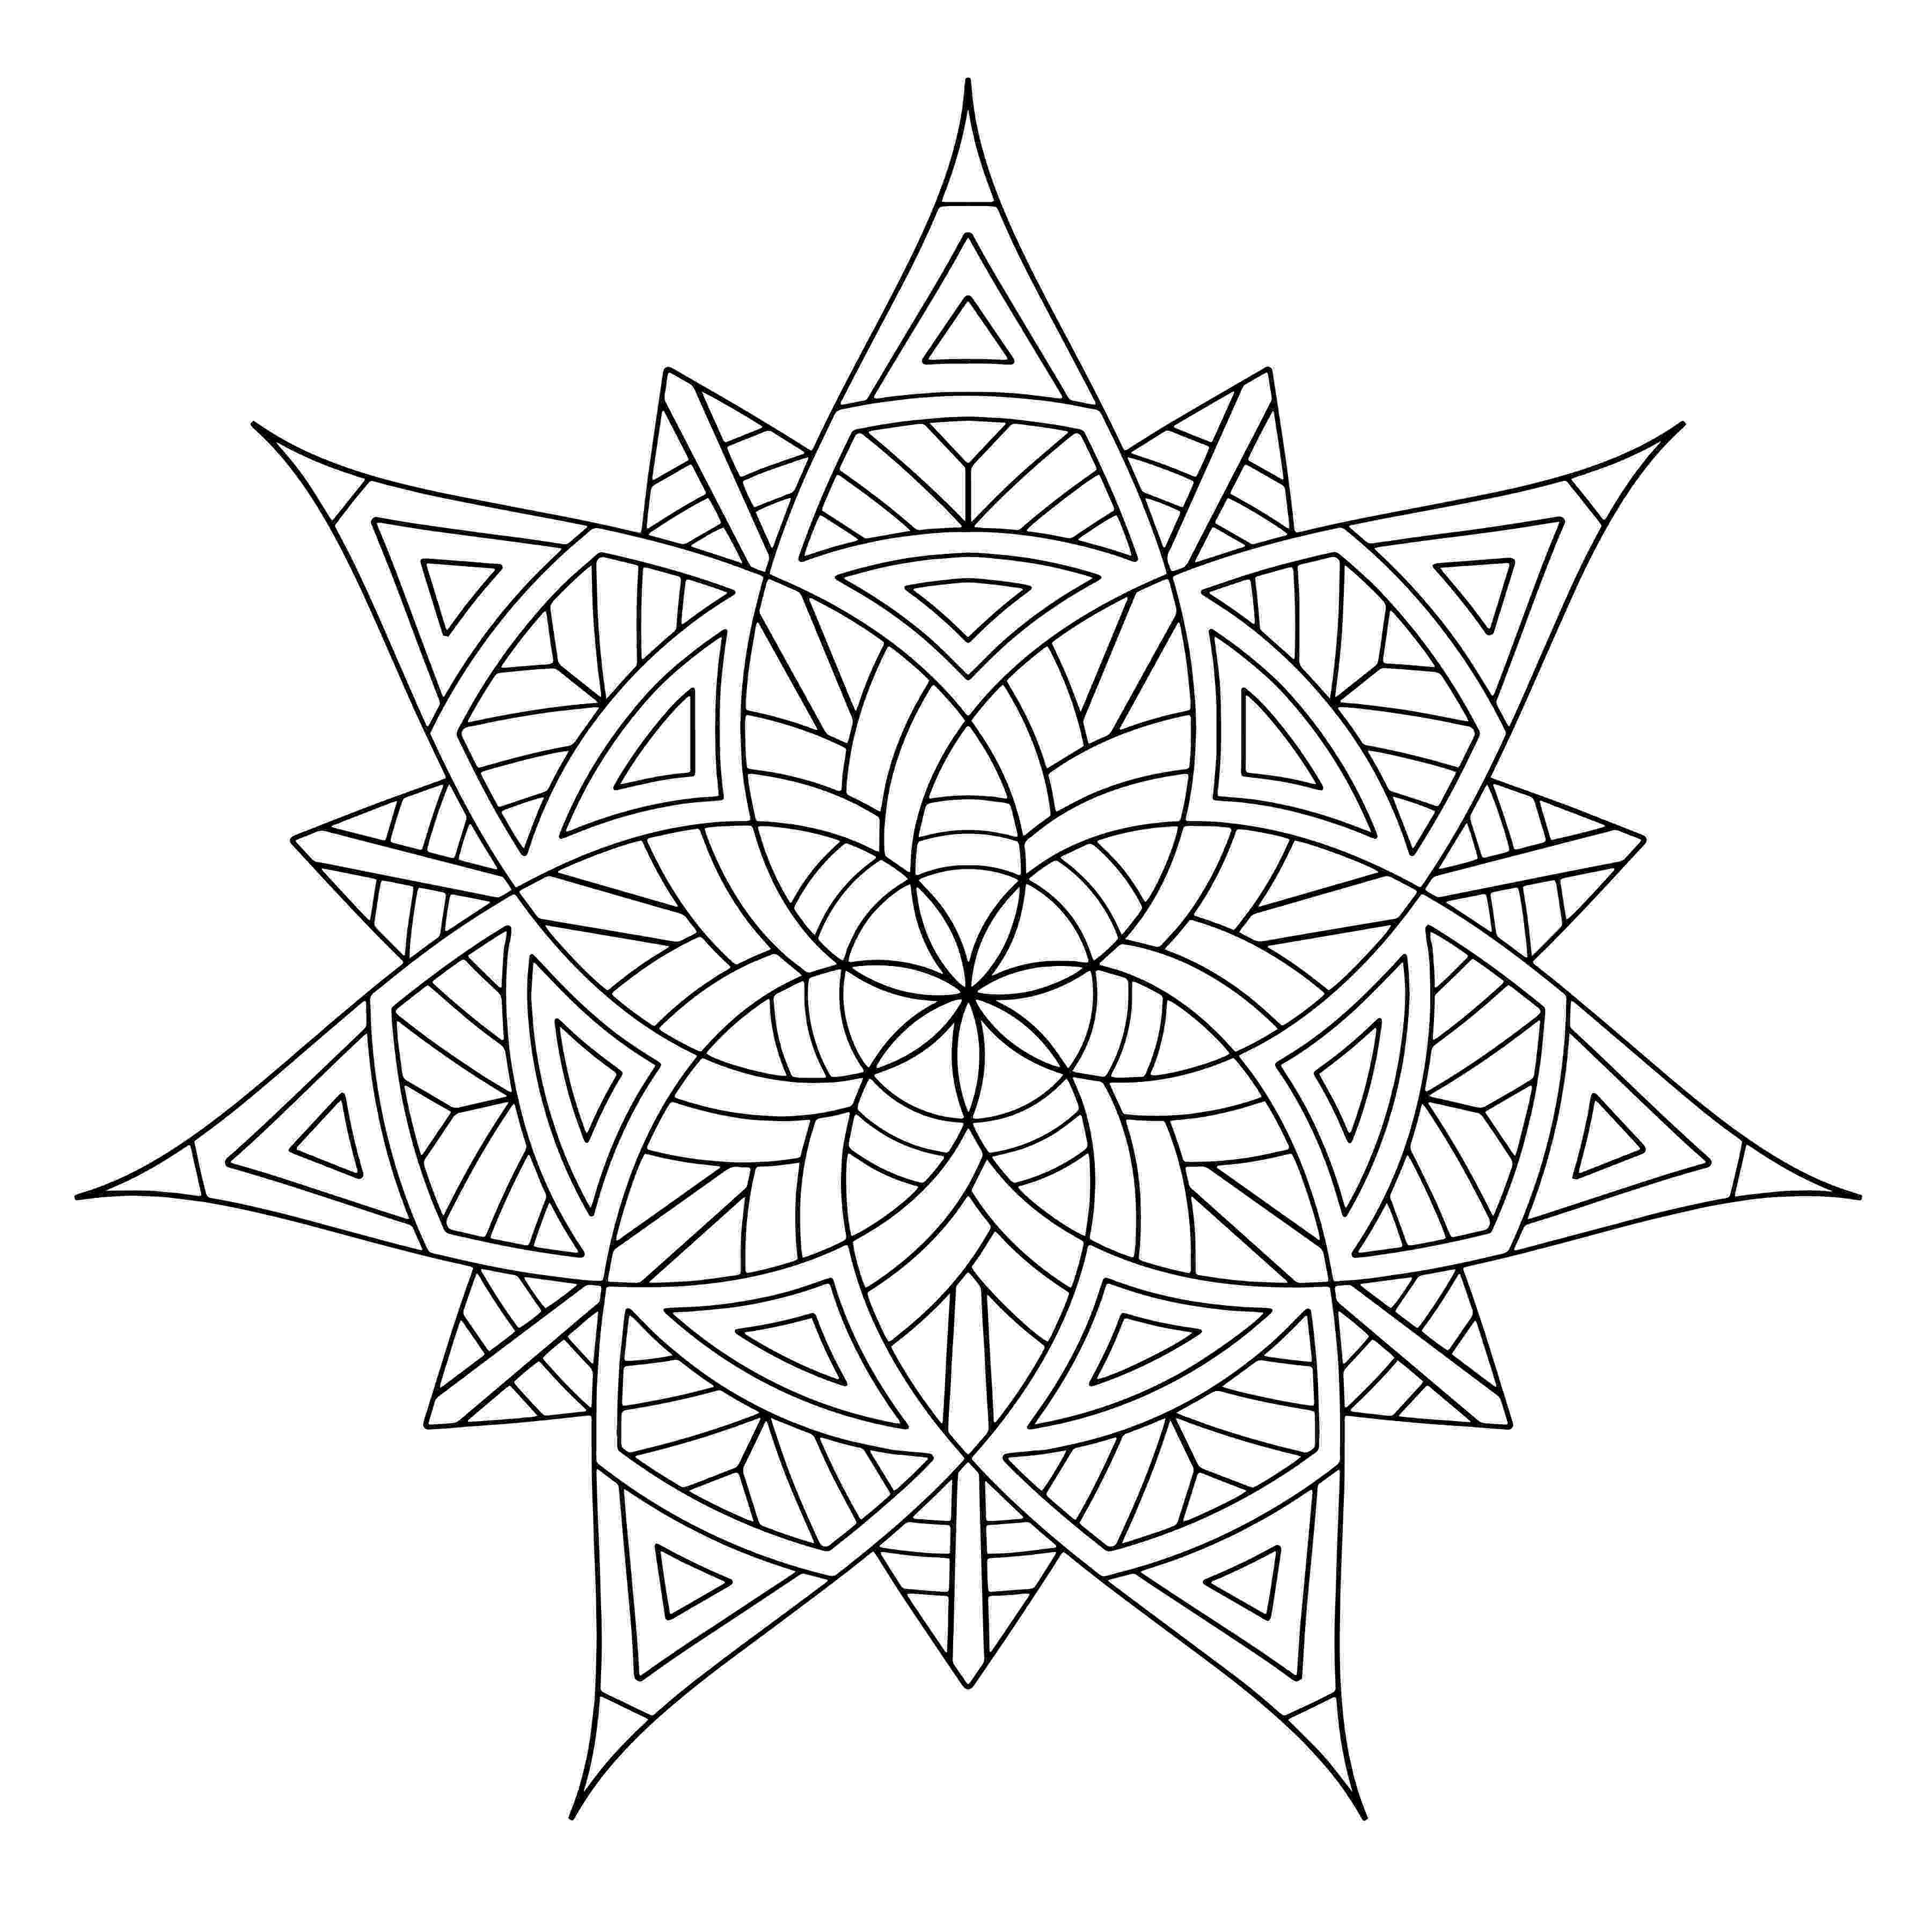 coloring pages for adults patterns free coloring page coloring adult triangles traits anti adults coloring pages patterns for